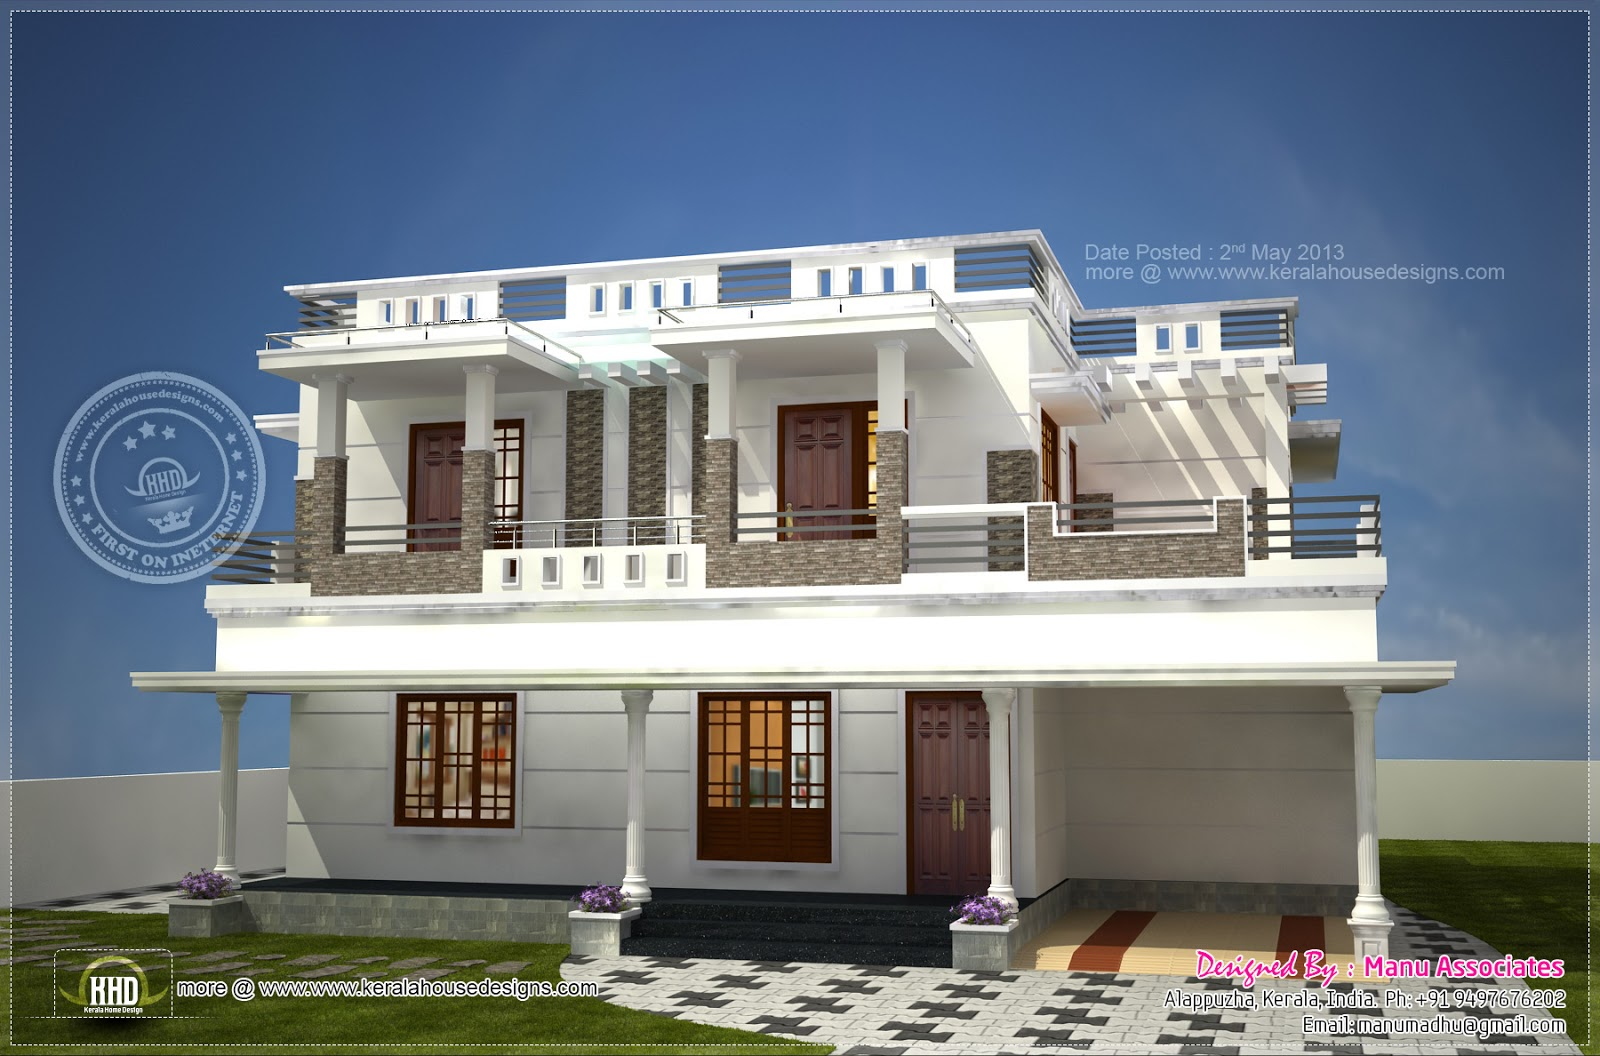 Modern home design in alappuzha kerala house design plans Design my home